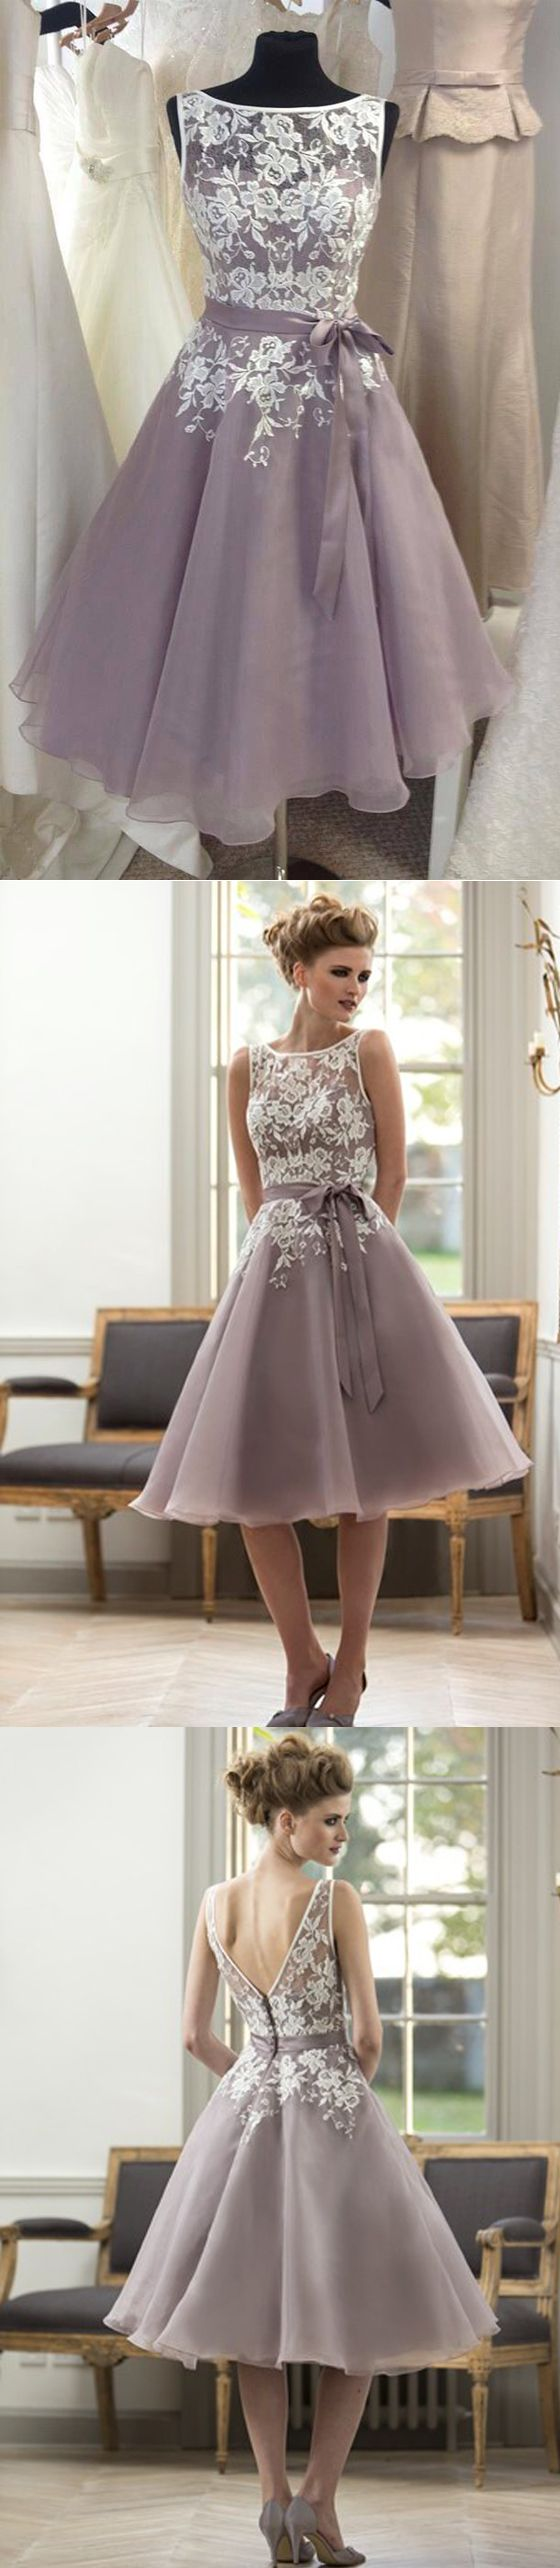 Scoop Neckline Lace Top Short Bridesmaid Dresses With Sash Formal Prom Dress Gown. #bridesmaiddress #bridesmaiddresses #weddingpartydress #promdress #partydress